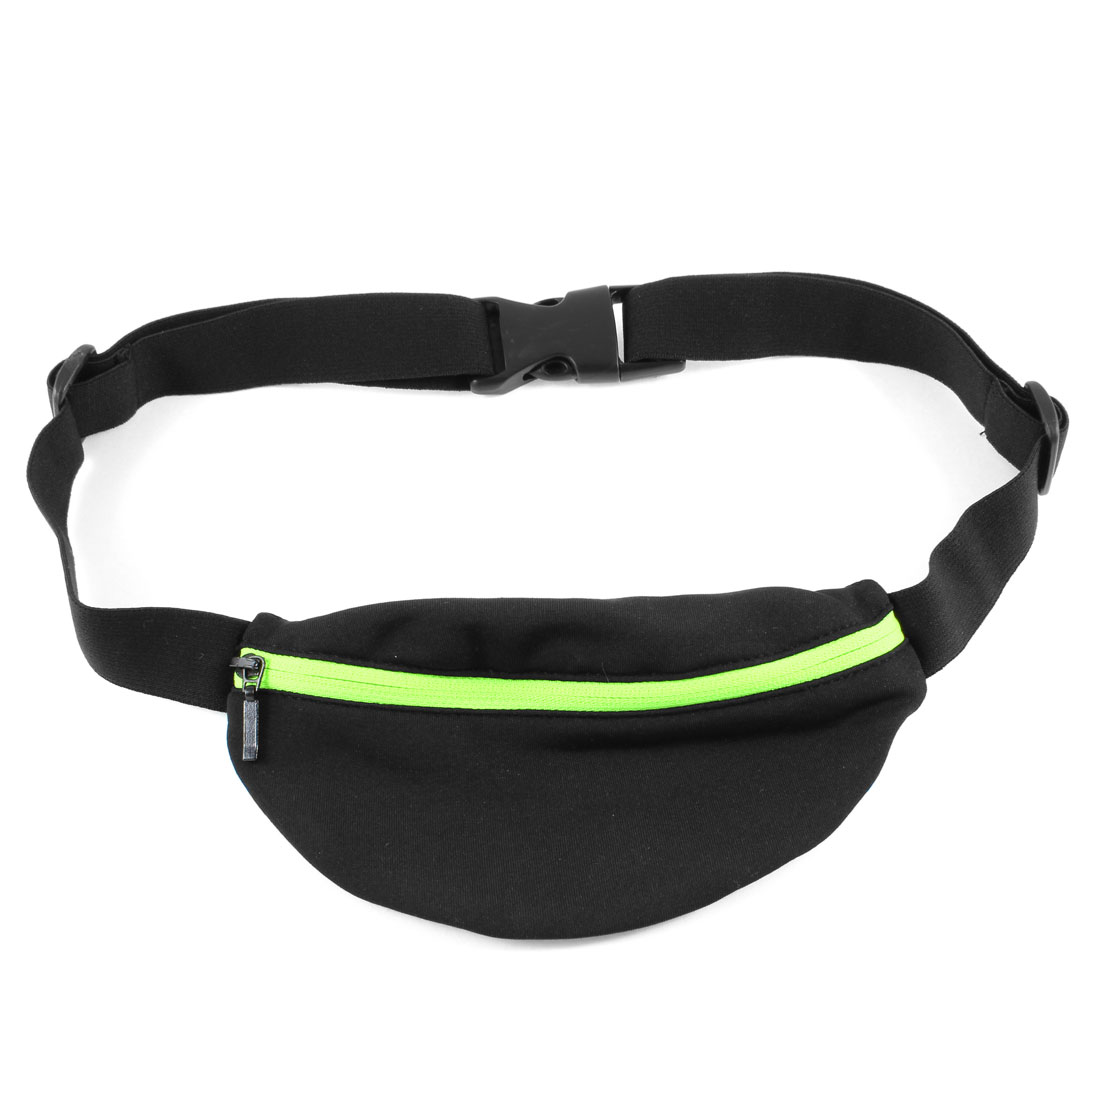 Adult Zip up 1 Compartment Pocket Waist Bag Fanny Pack Pouch Black Yellow